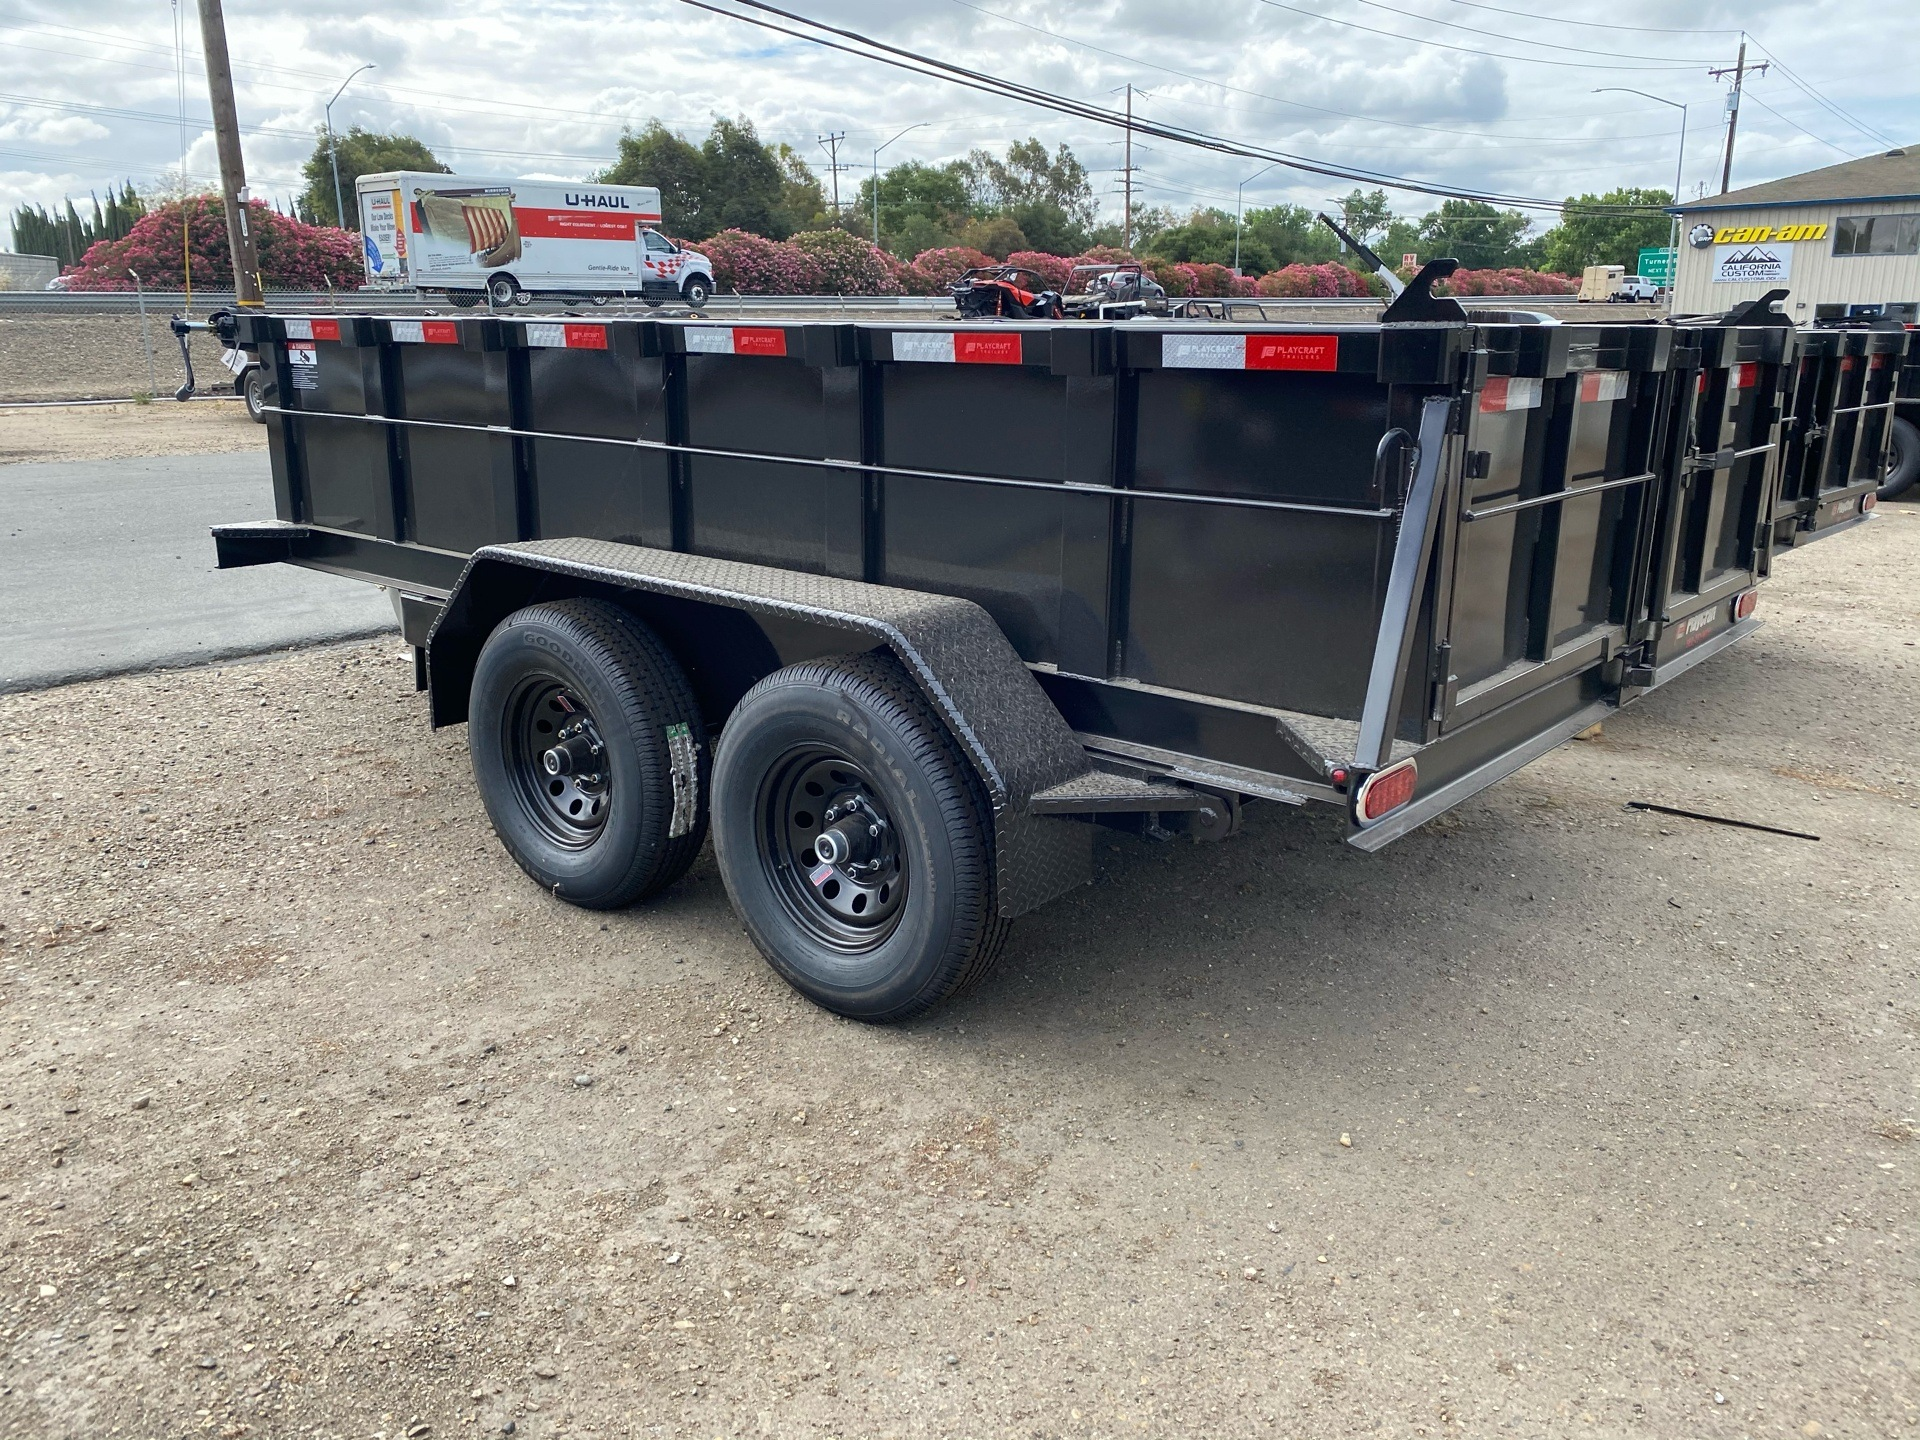 2020 Playcraft Trailers 6' x 12' Dump Trailer in Acampo, California - Photo 6